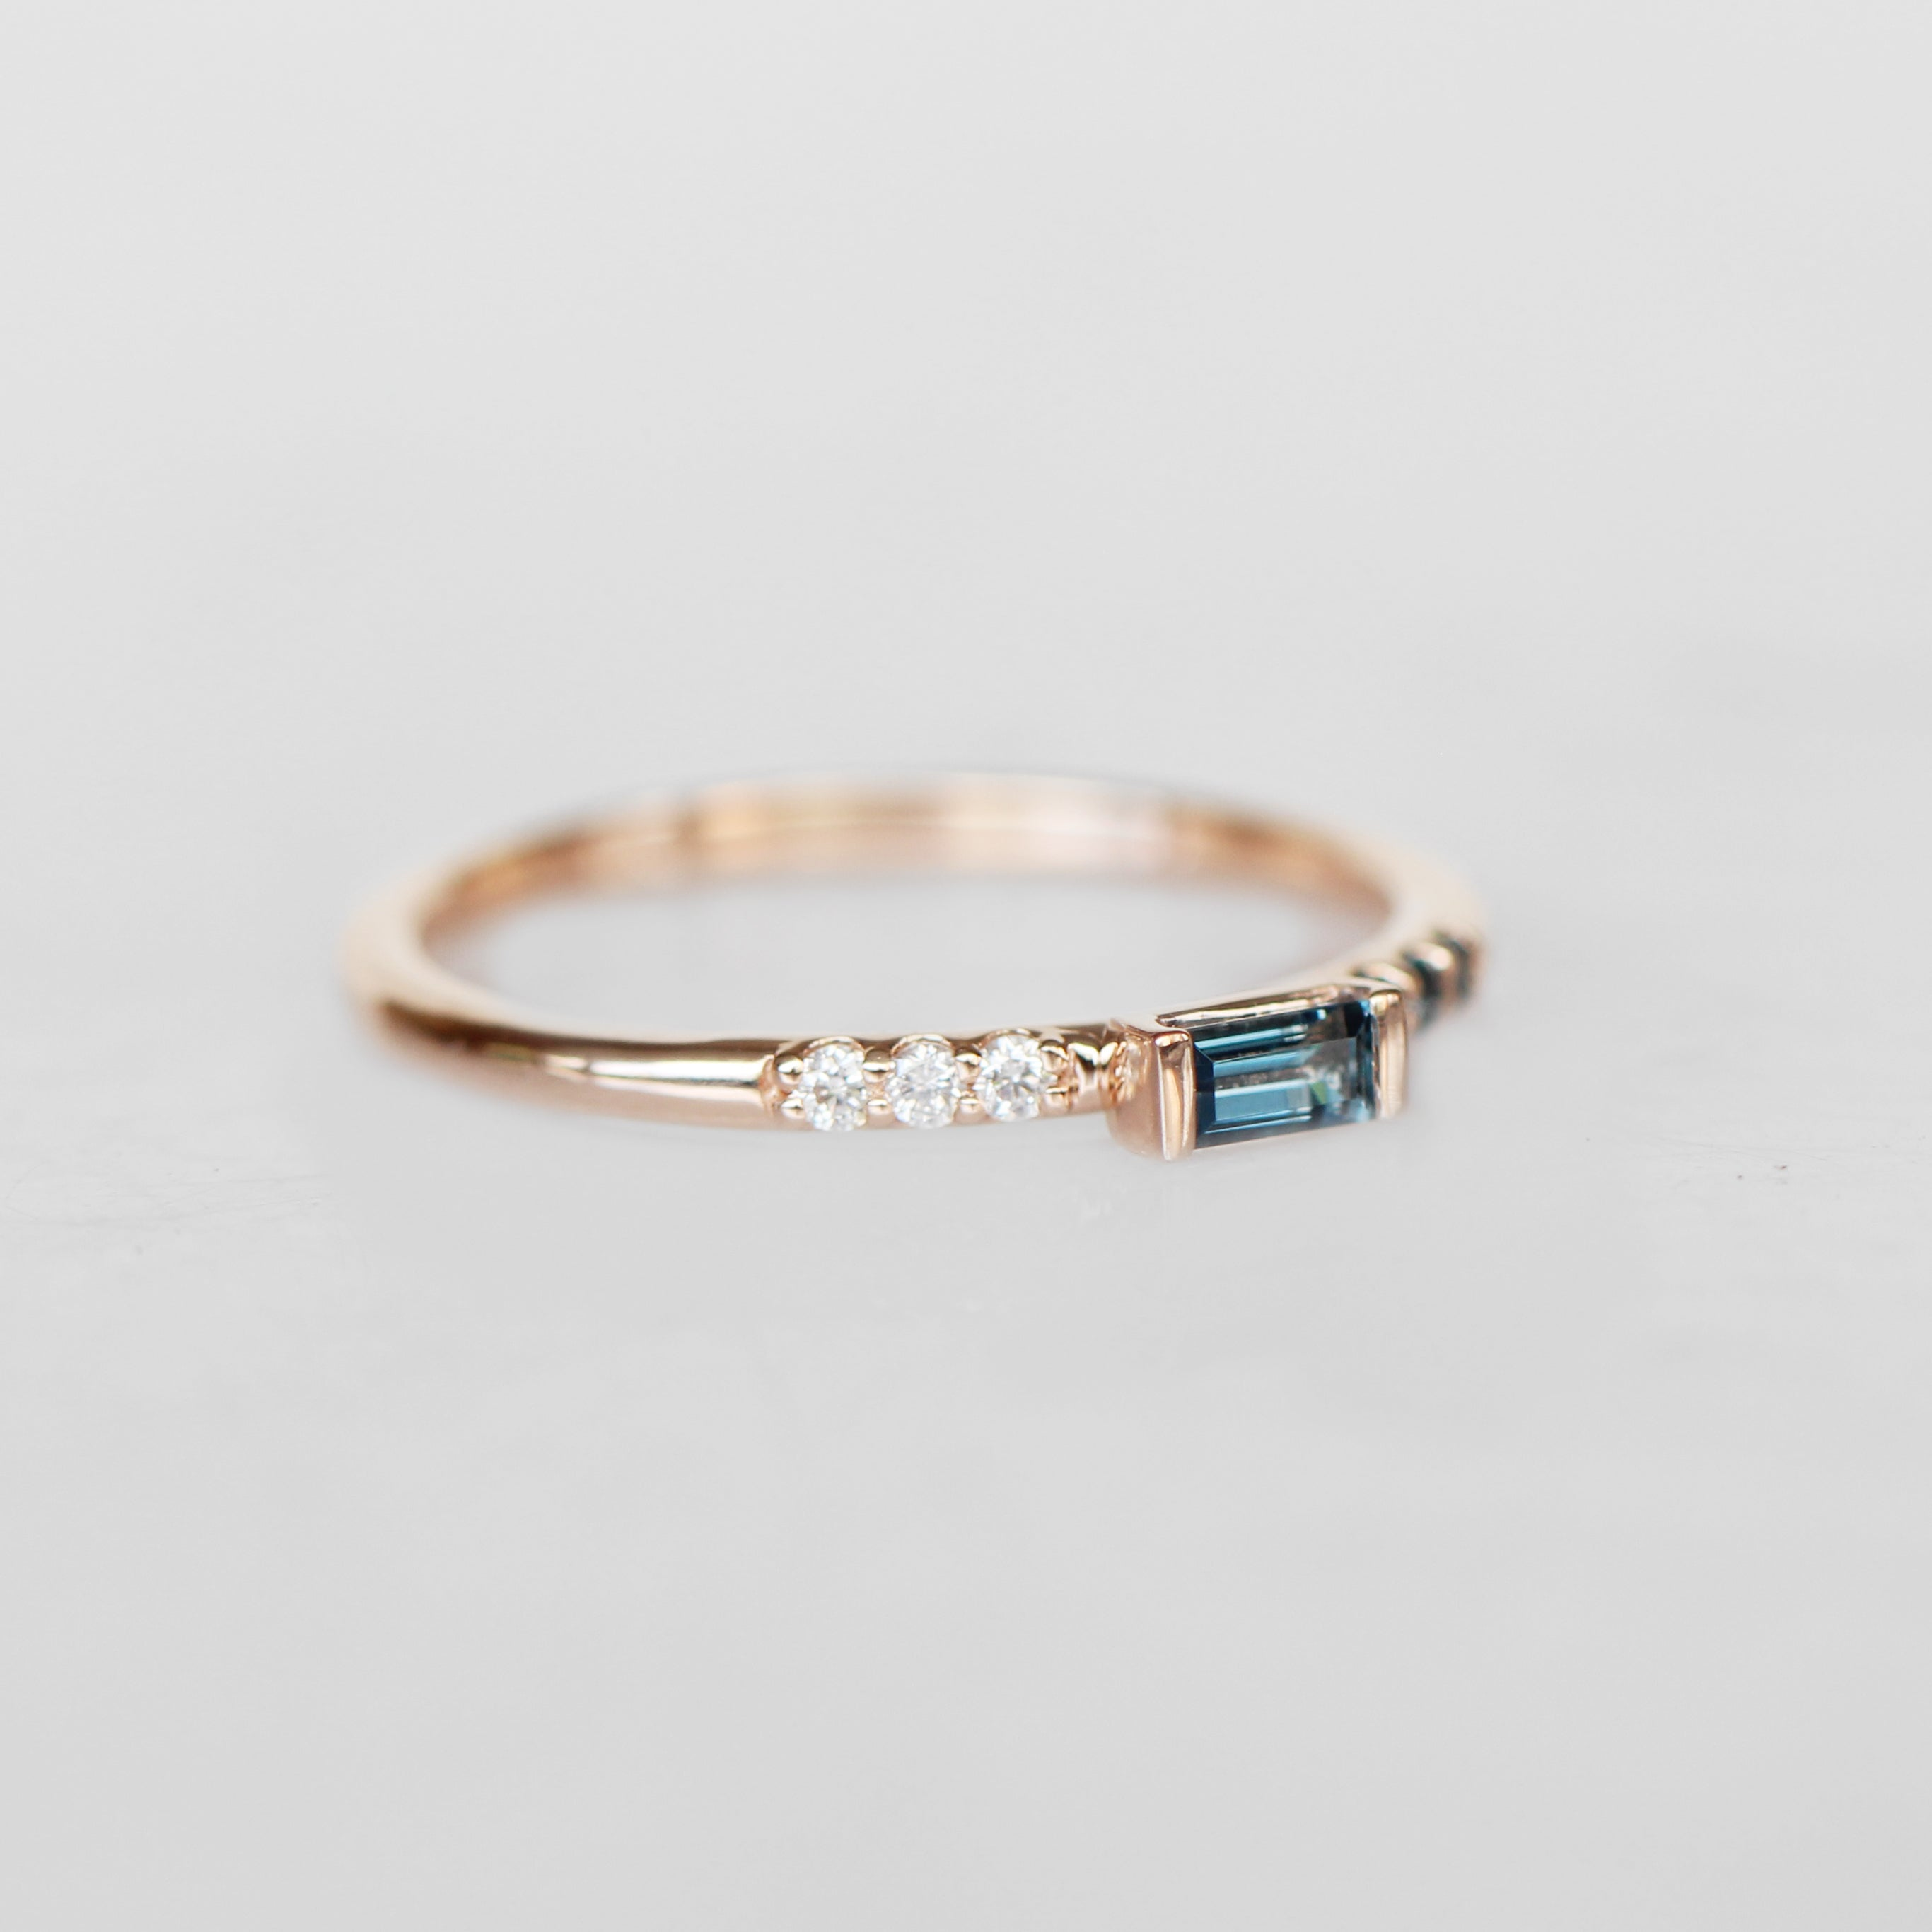 Summer Stacking Ring with London Blue Topaz and White Diamonds in 10k Rose Gold - Ready to Size and Ship - Salt & Pepper Celestial Diamond Engagement Rings and Wedding Bands  by Midwinter Co.